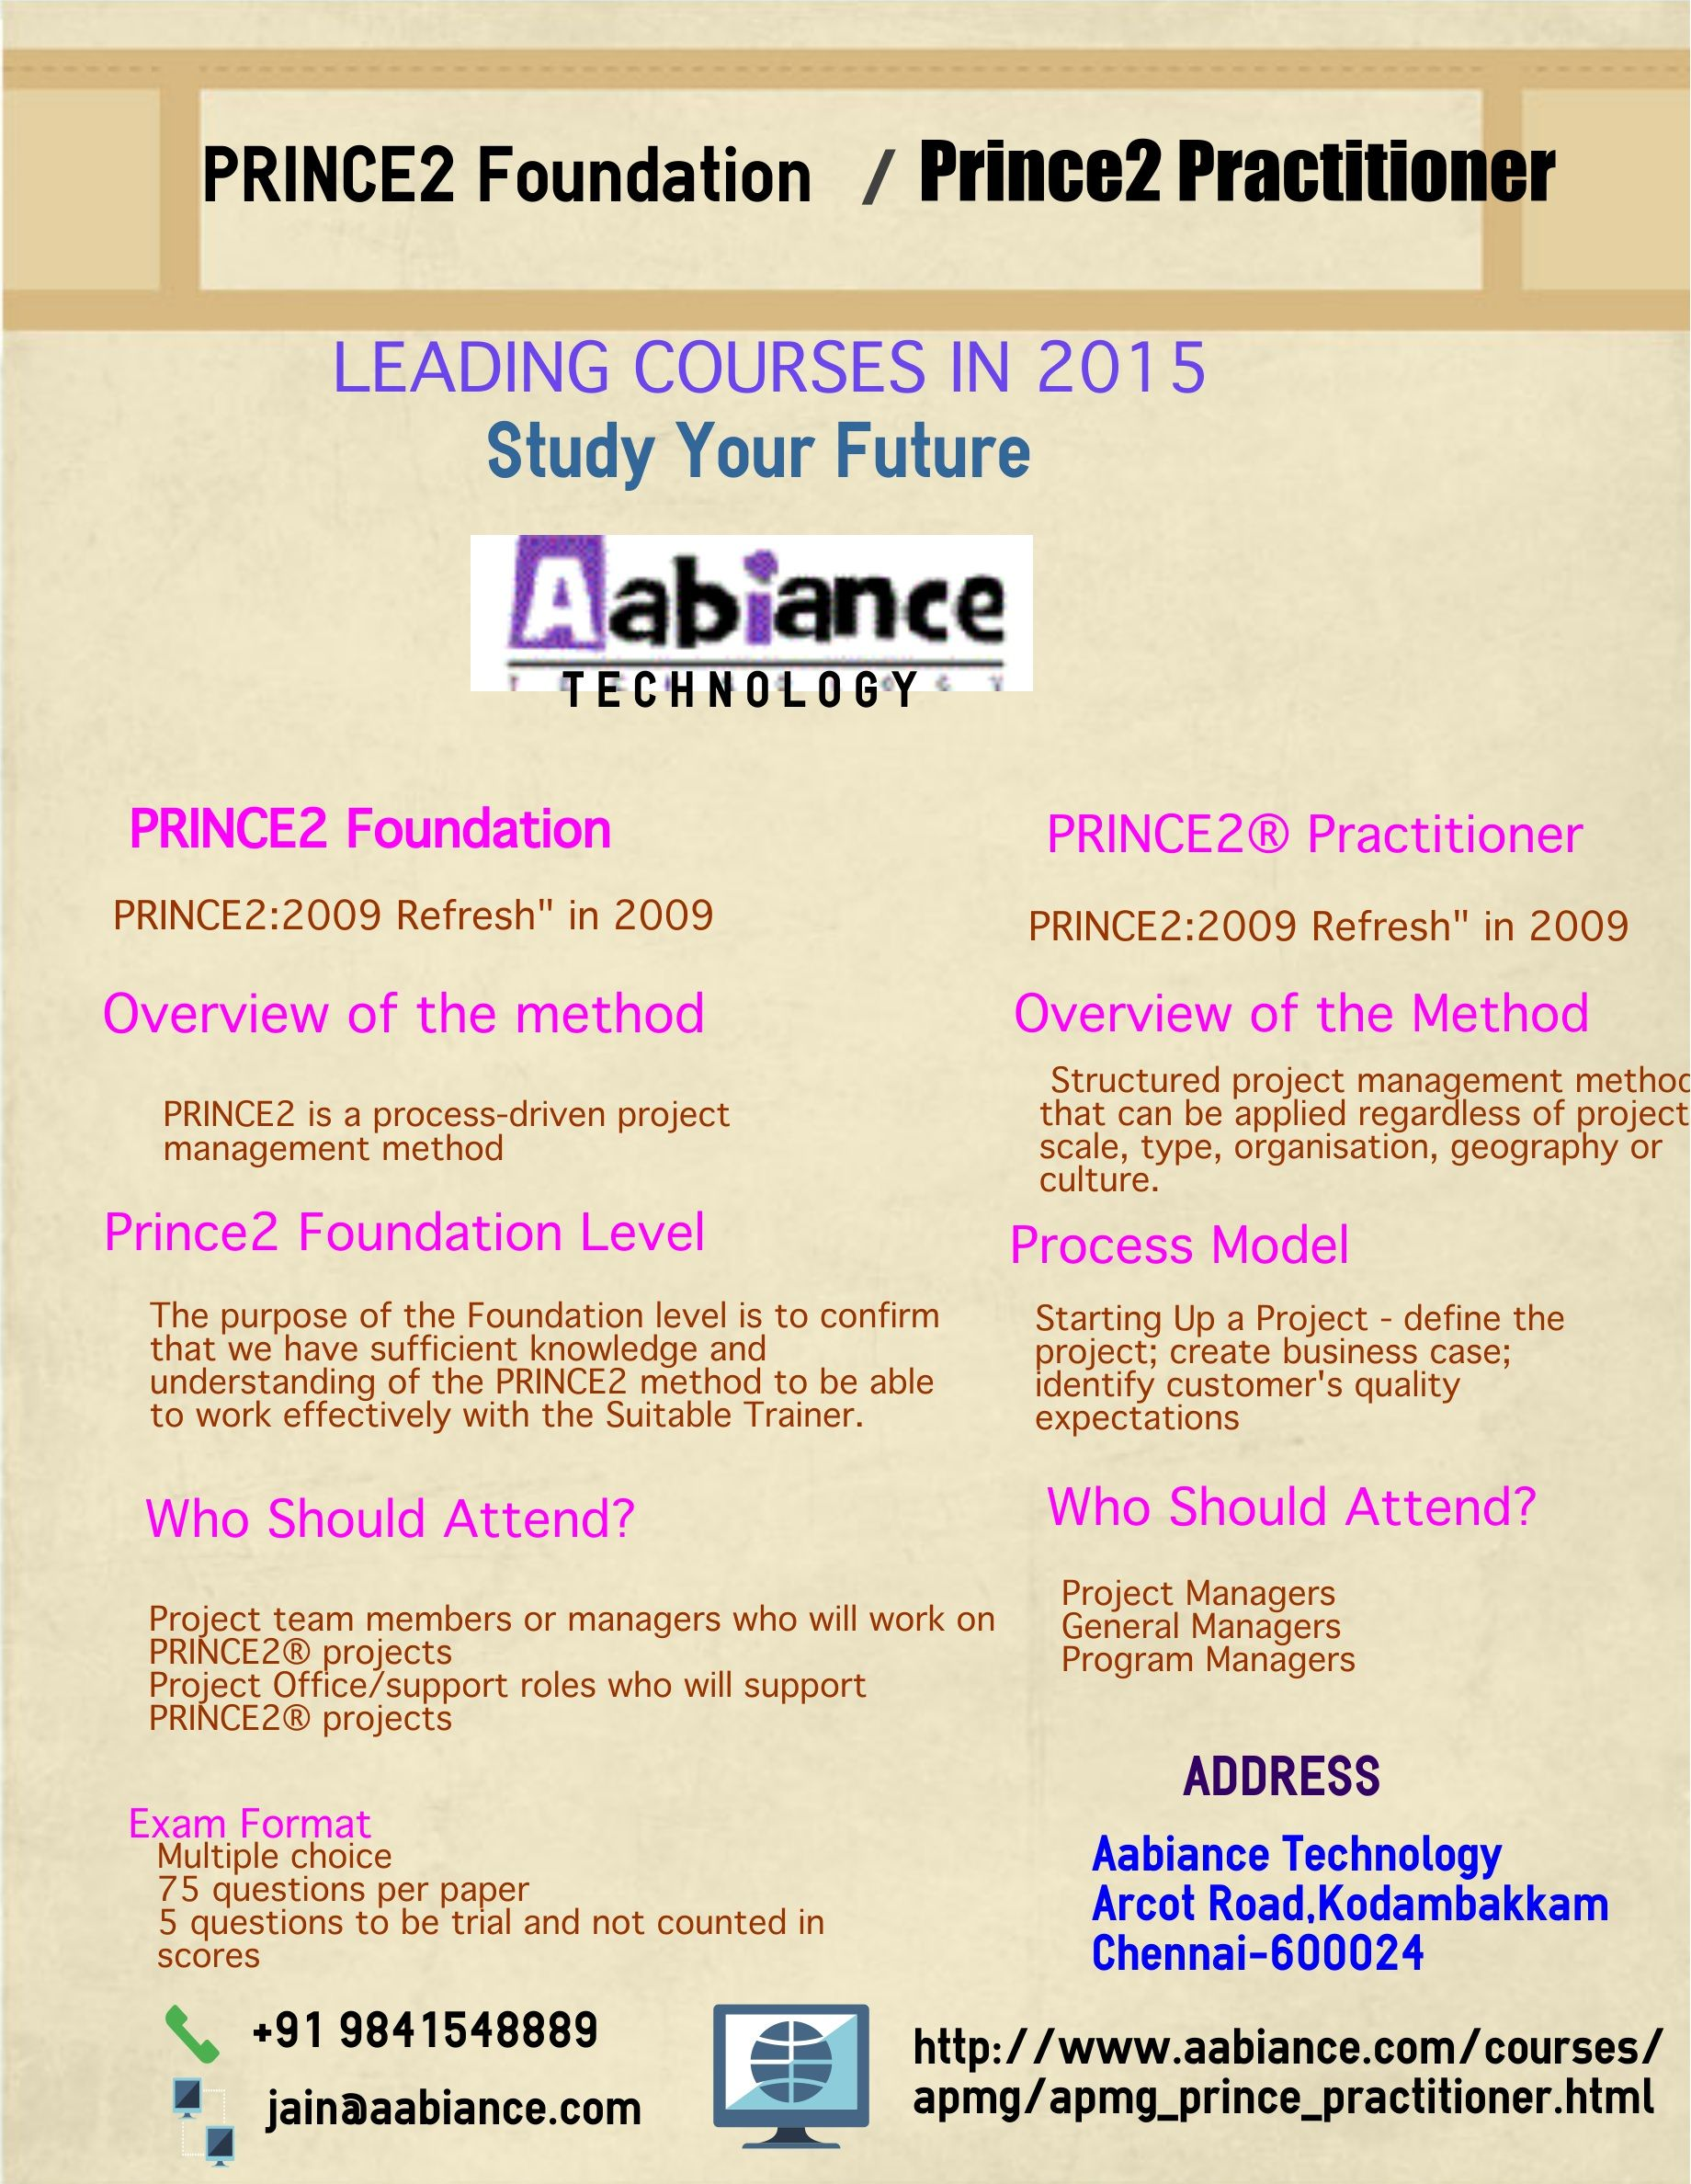 Study About The Courses Prince2 Foundation To Get Your Dream Jobs In